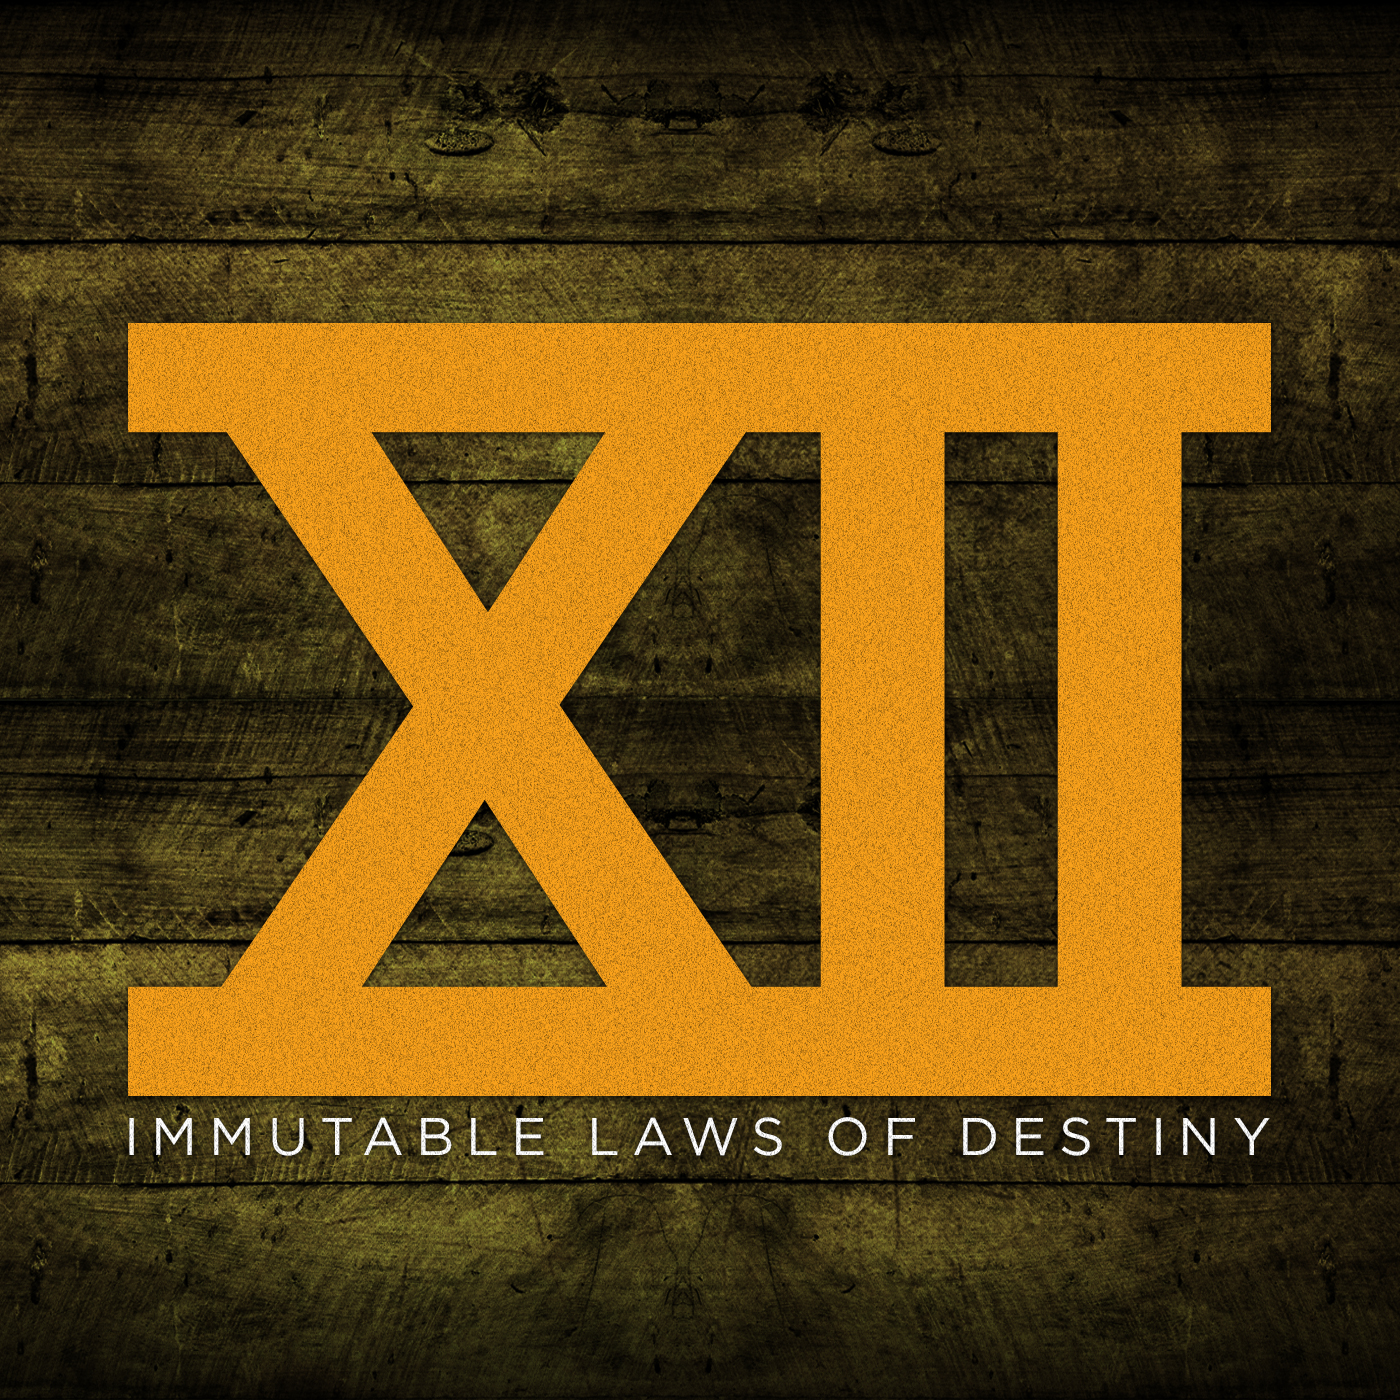 Ctab Podcast » Twelve Immutable Laws of Destiny